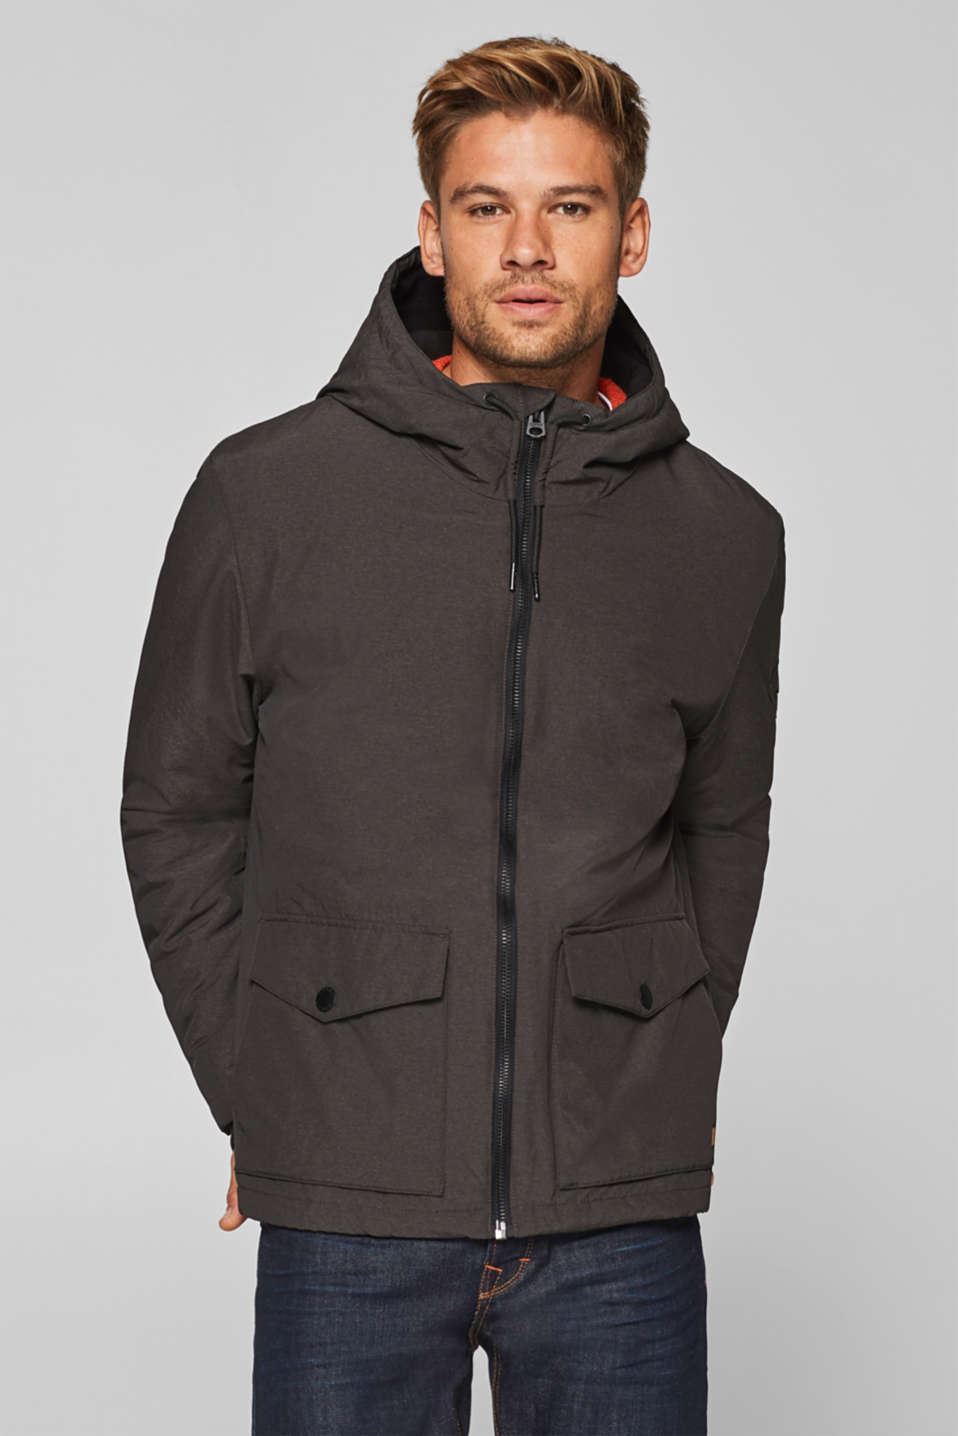 Esprit - Jacket with a fleece-lined hood